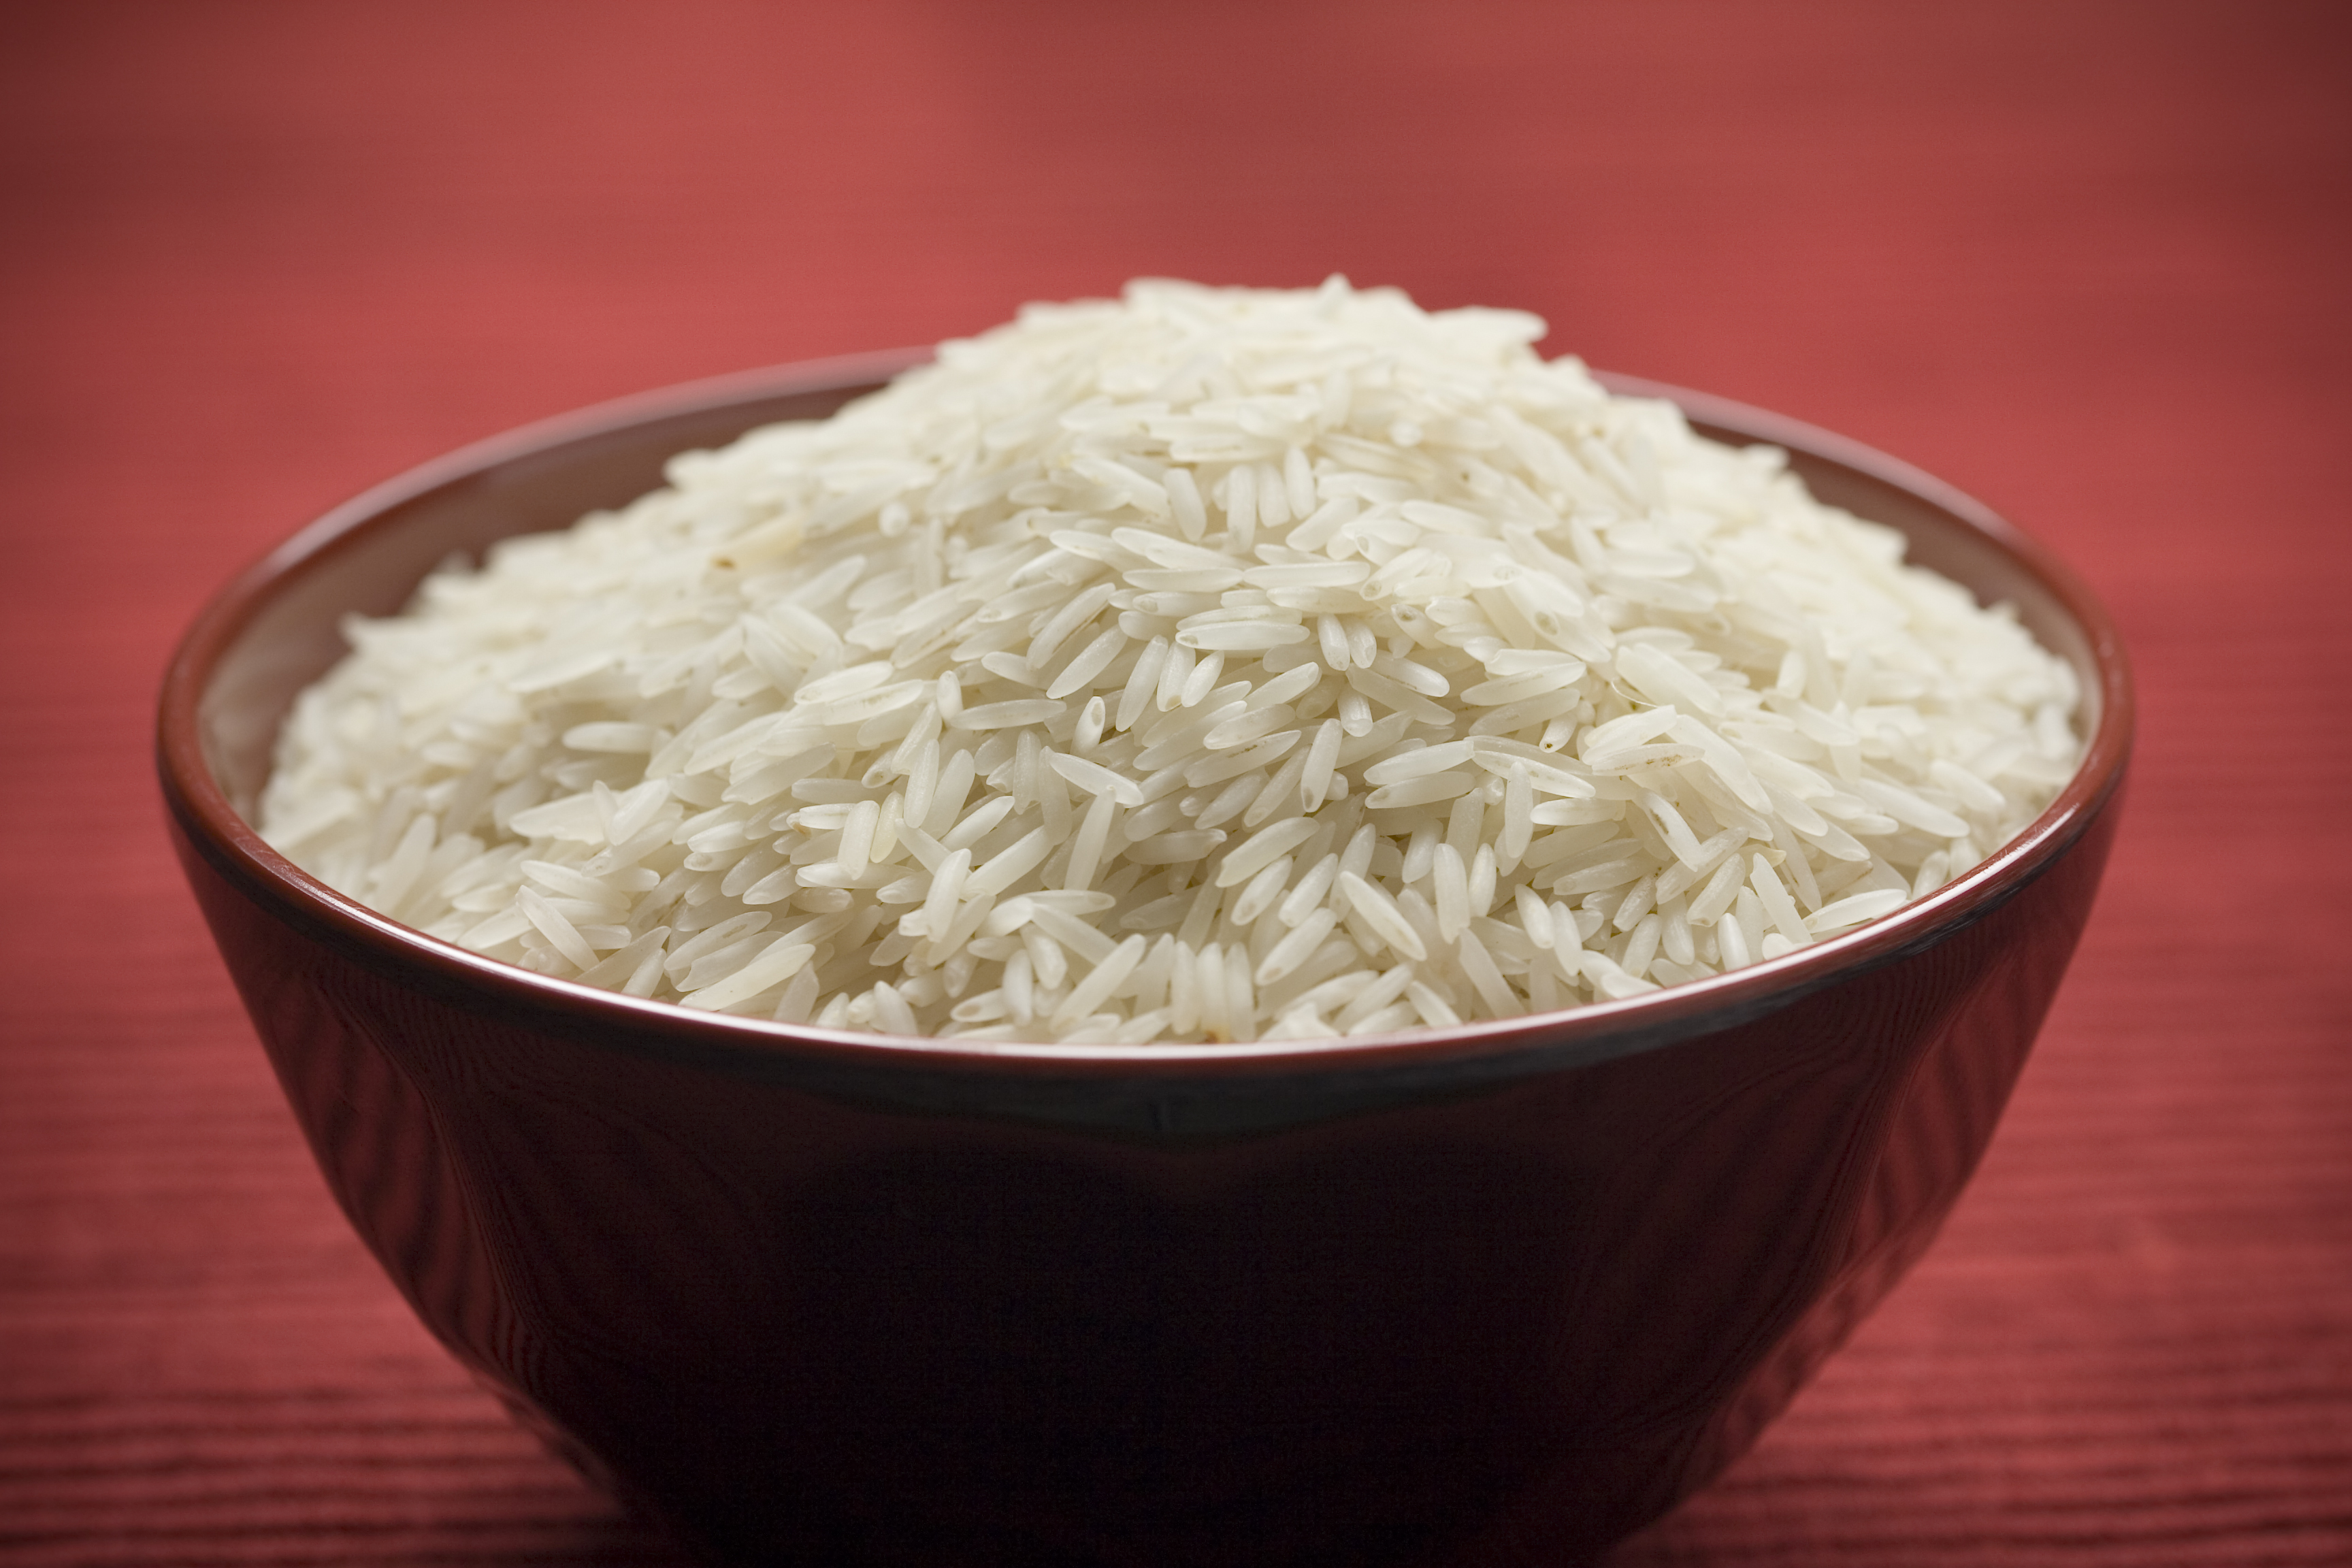 Uncooked Rice in a Red Bowl 2676.35 Kb